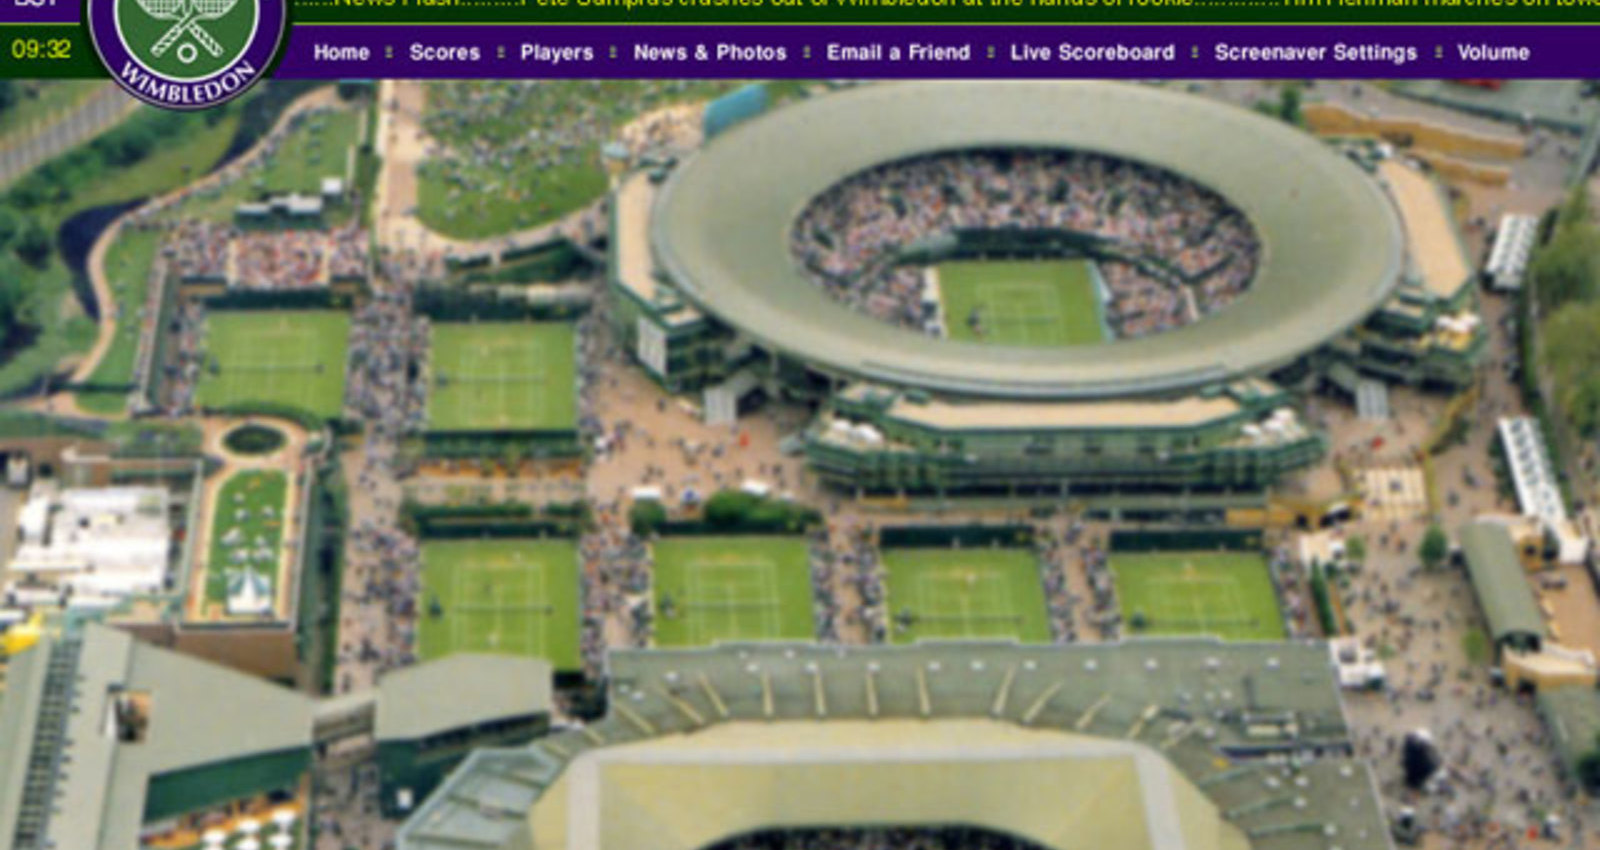 Wimbledon 2003 Screen Saver